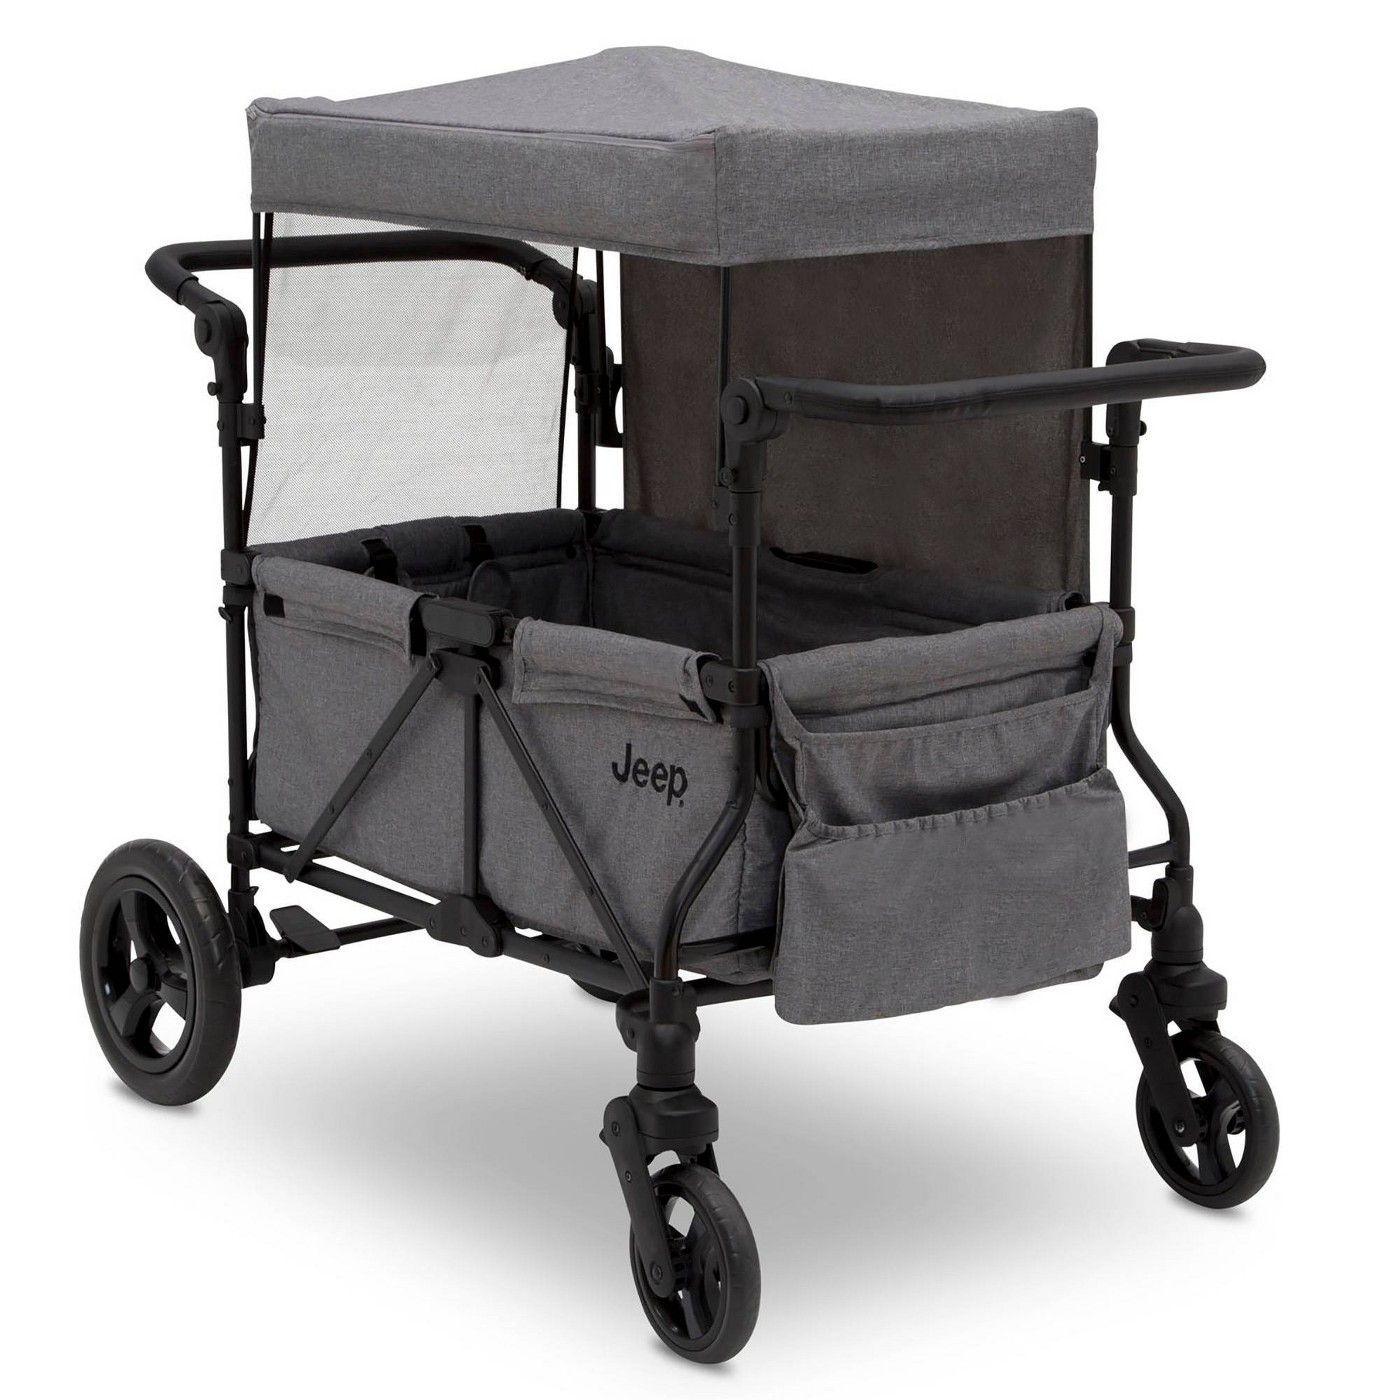 Jeep Wrangler Stroller Wagon with Included Car Seat